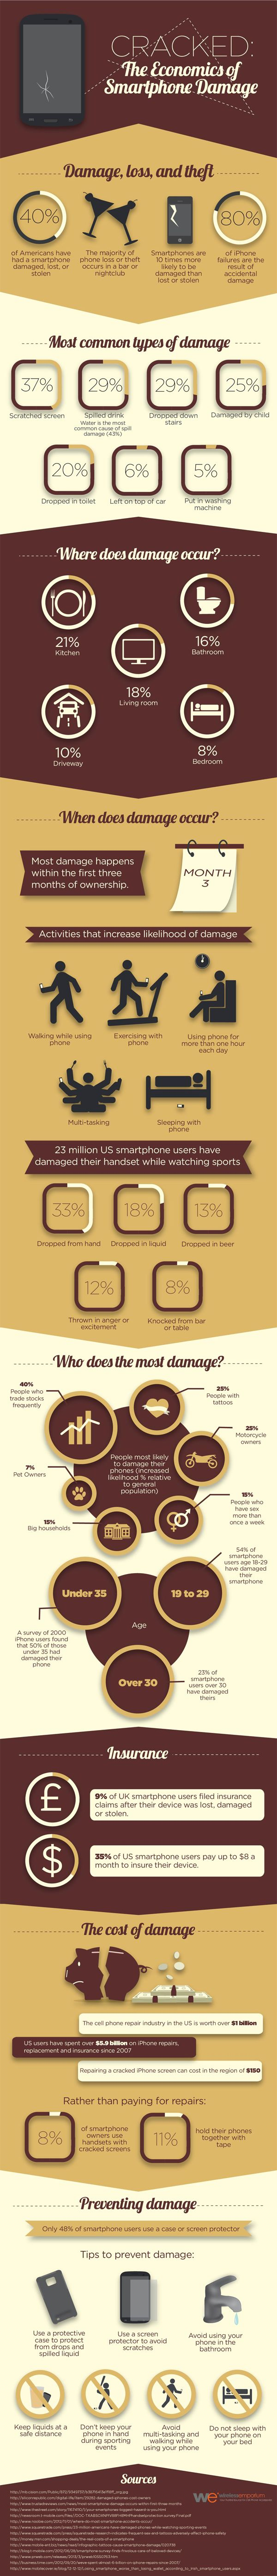 Did you know a damaged smartphones causes millions of dollars in  losses a year? Smartphones all over the world suffer through  inadvertent drops and falls,  knicks and scratches from banging  against other inanimate objects and even damage from liquid